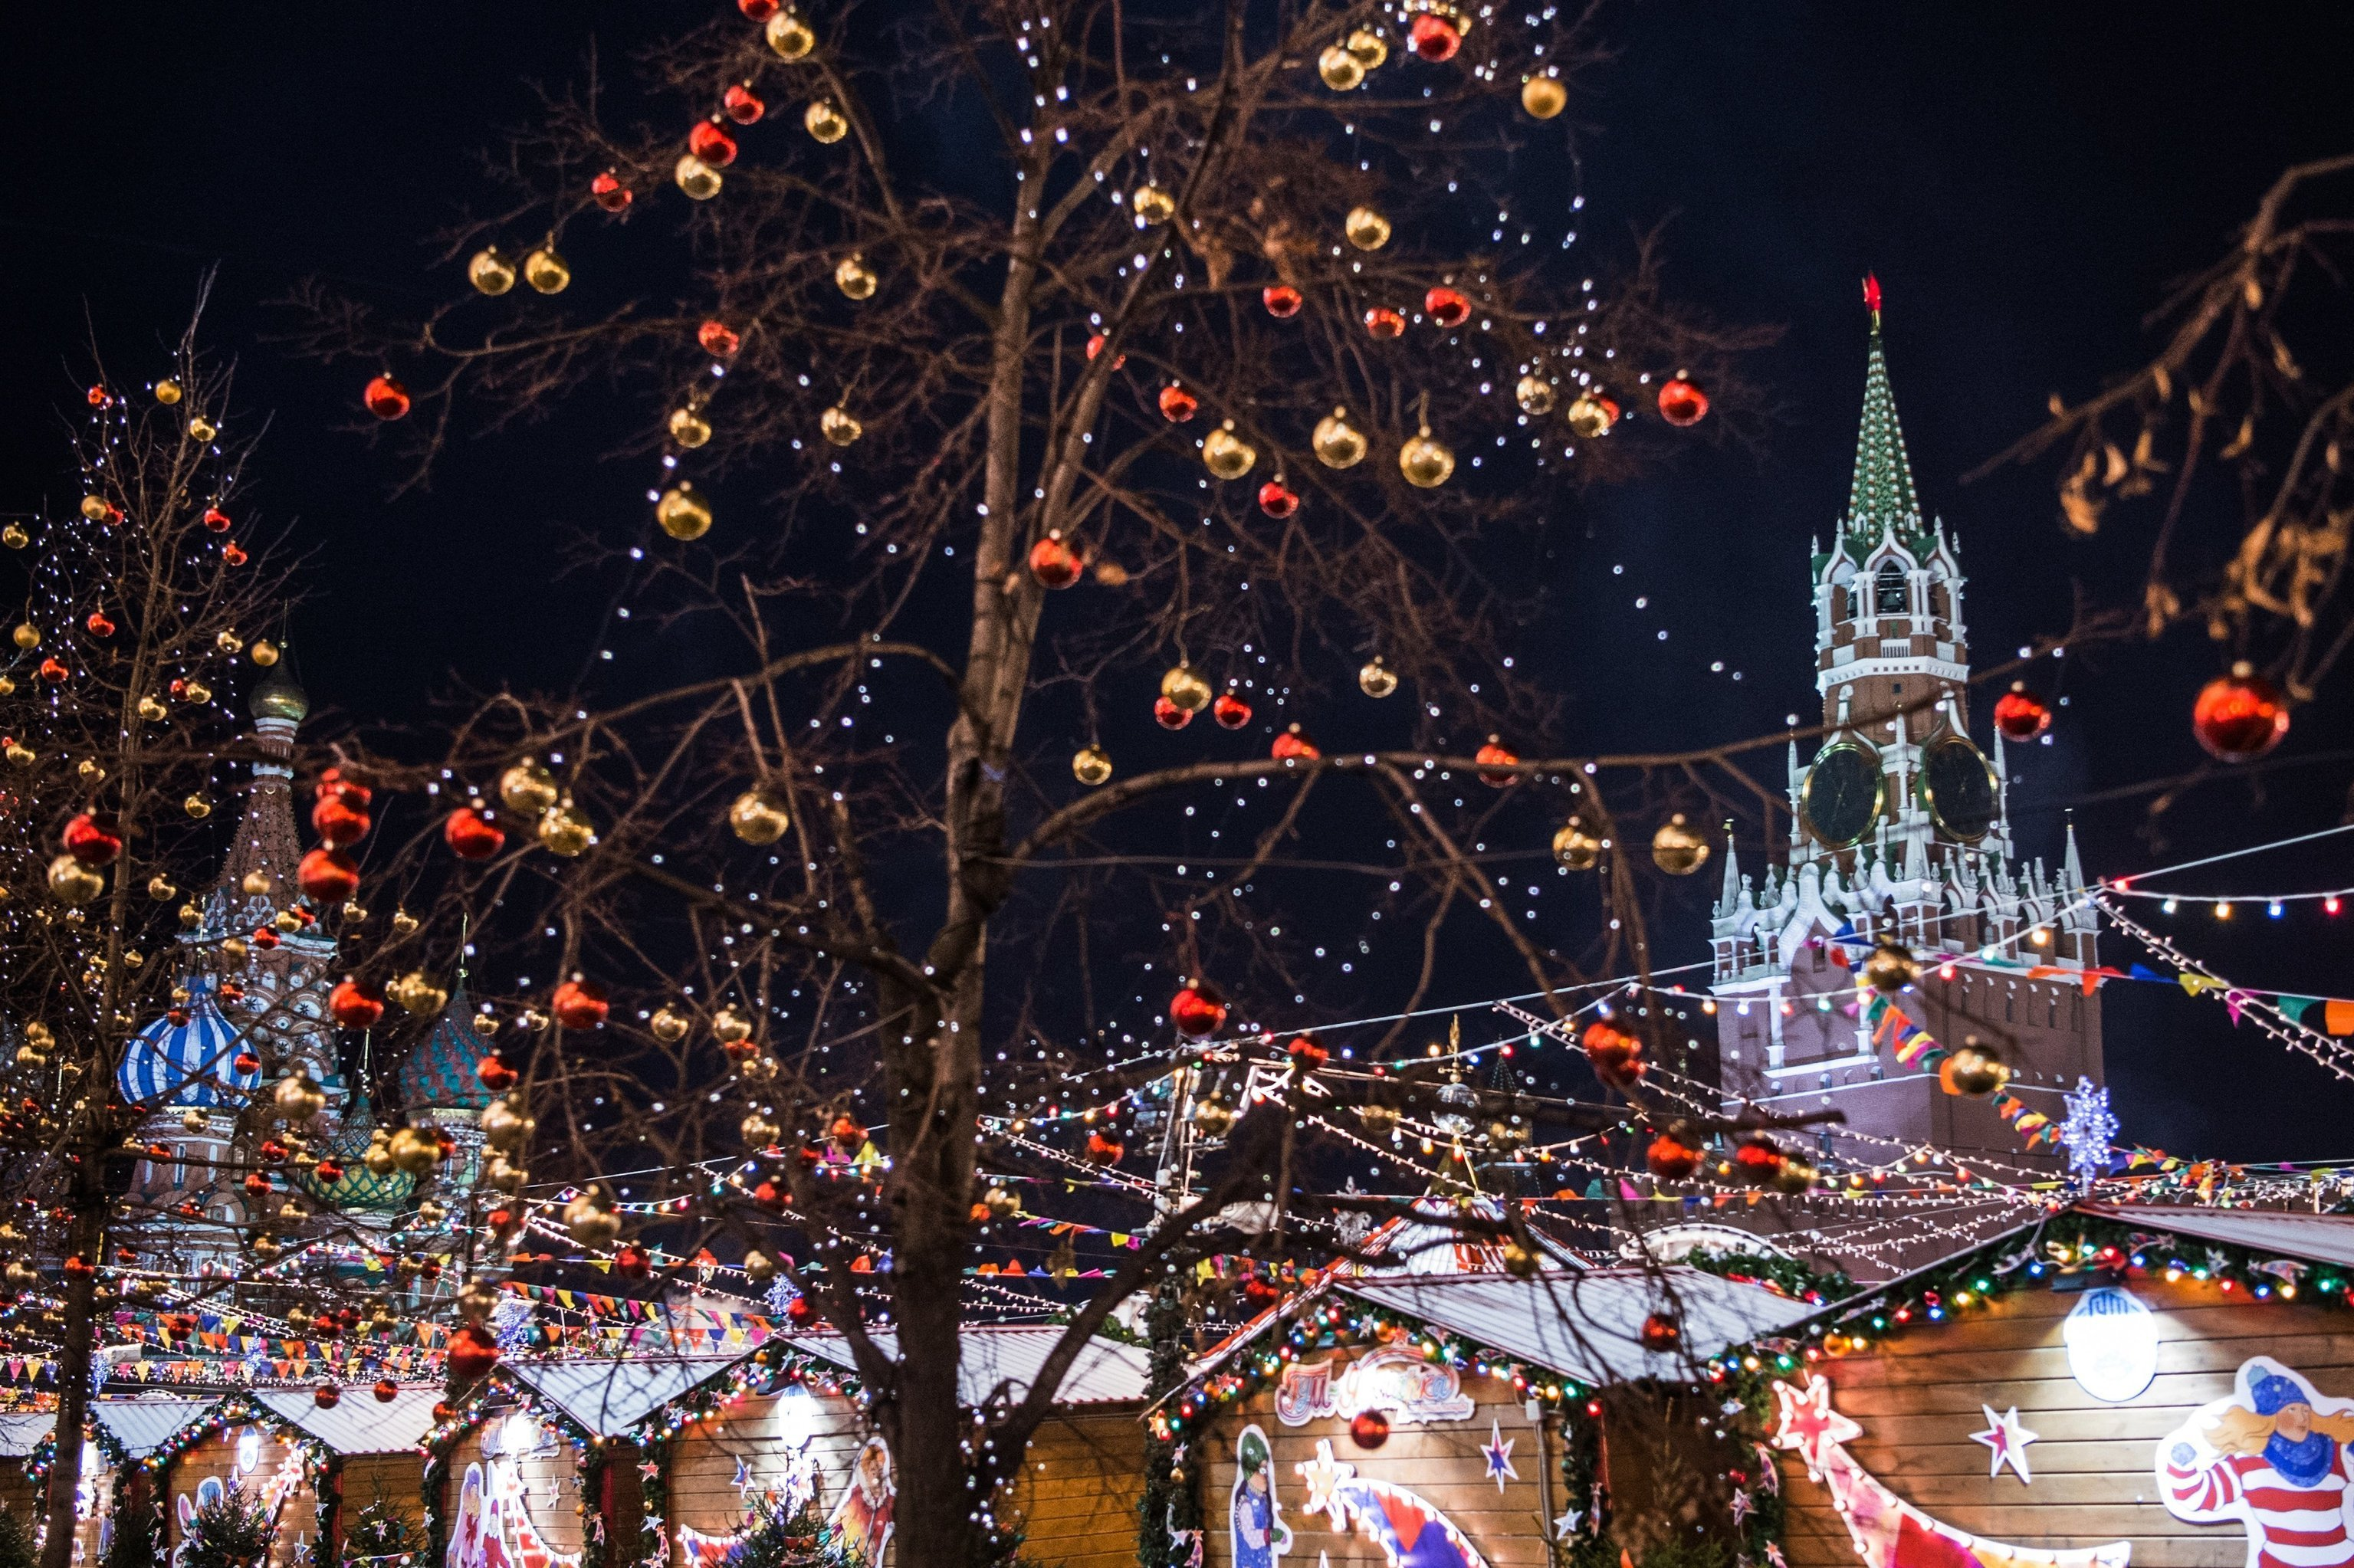 Festive illumination and the Spasskaya Tower of the Moscow Kremlin in Red Square